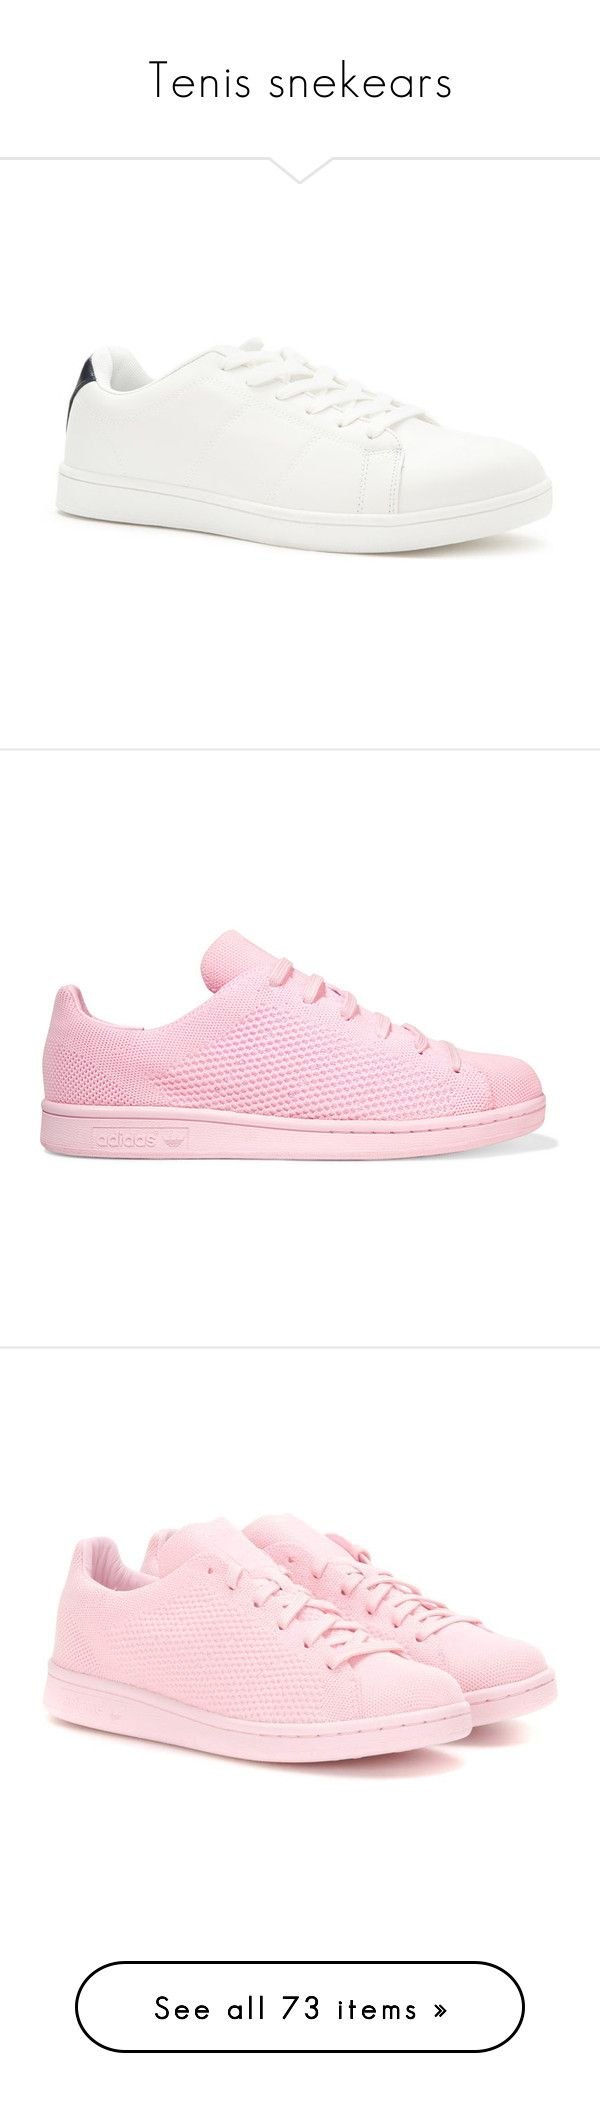 """Tenis snekears"" by paradapermitida on Polyvore featuring shoes, sneakers, forever 21, lace up shoes, vegan shoes, low profile sneakers, cushioned shoes, zapatos, pink e shoes - sneakers"